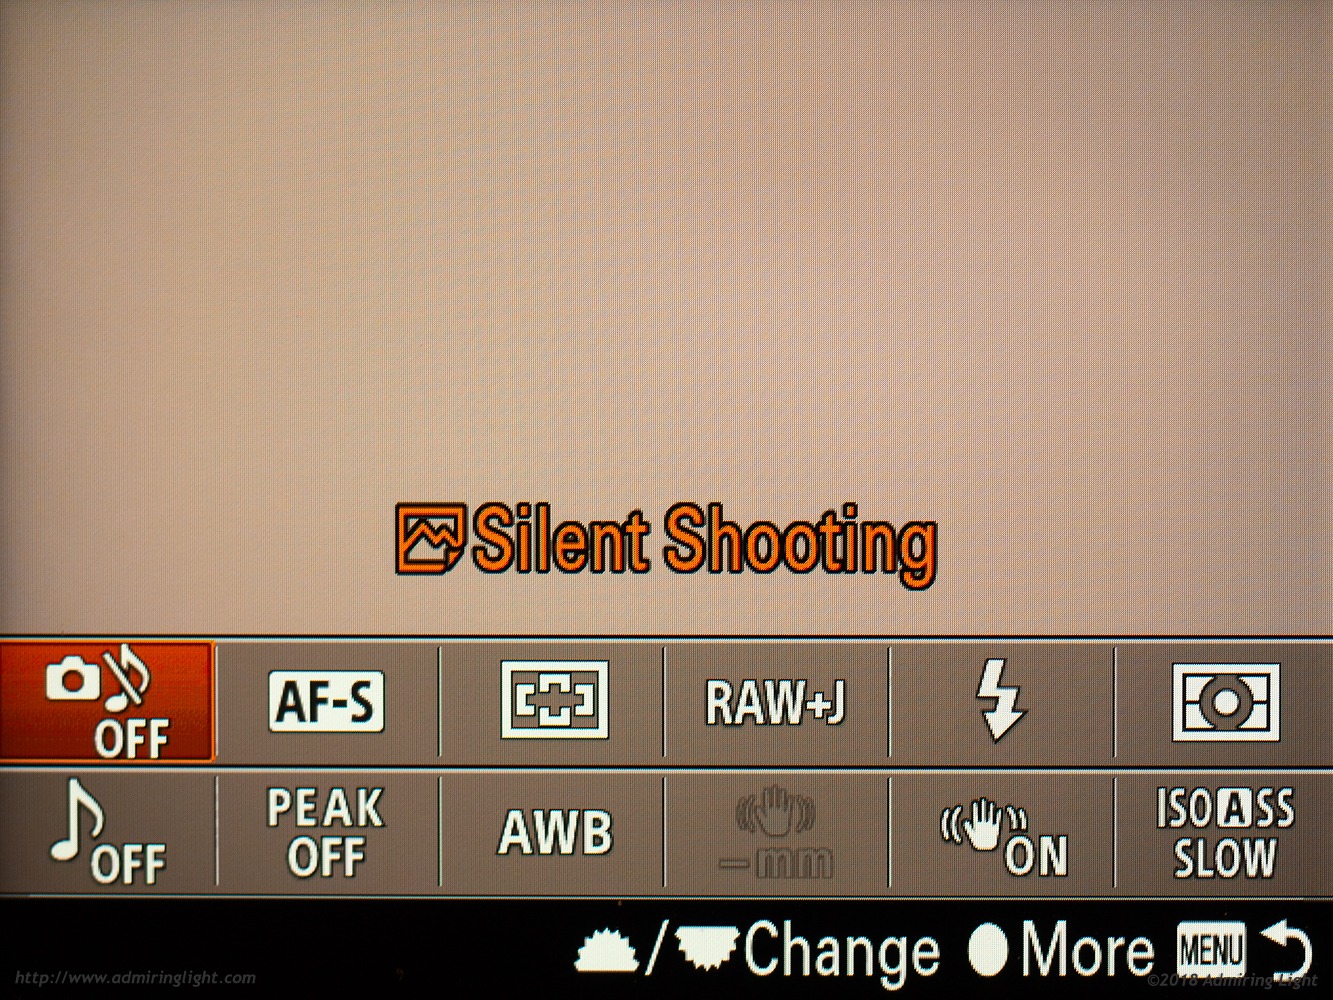 The Fn Menu, with Silent Shooting selected